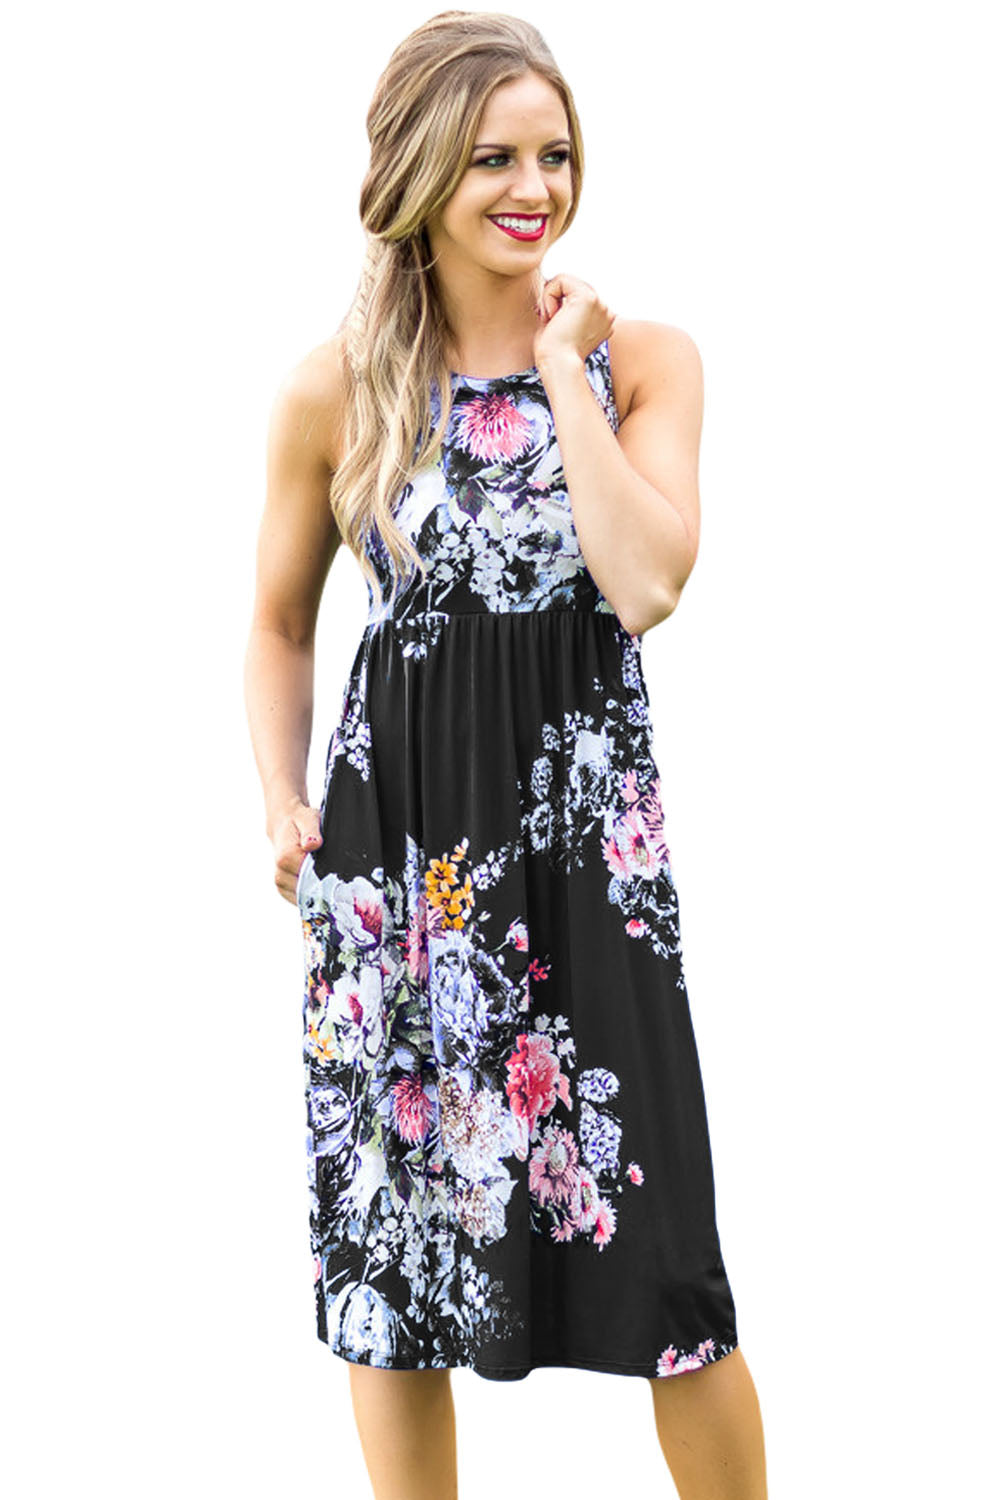 Fall in Love with Floral Print Boho Dress - ONLINE WOMEN BOHO DRESSES